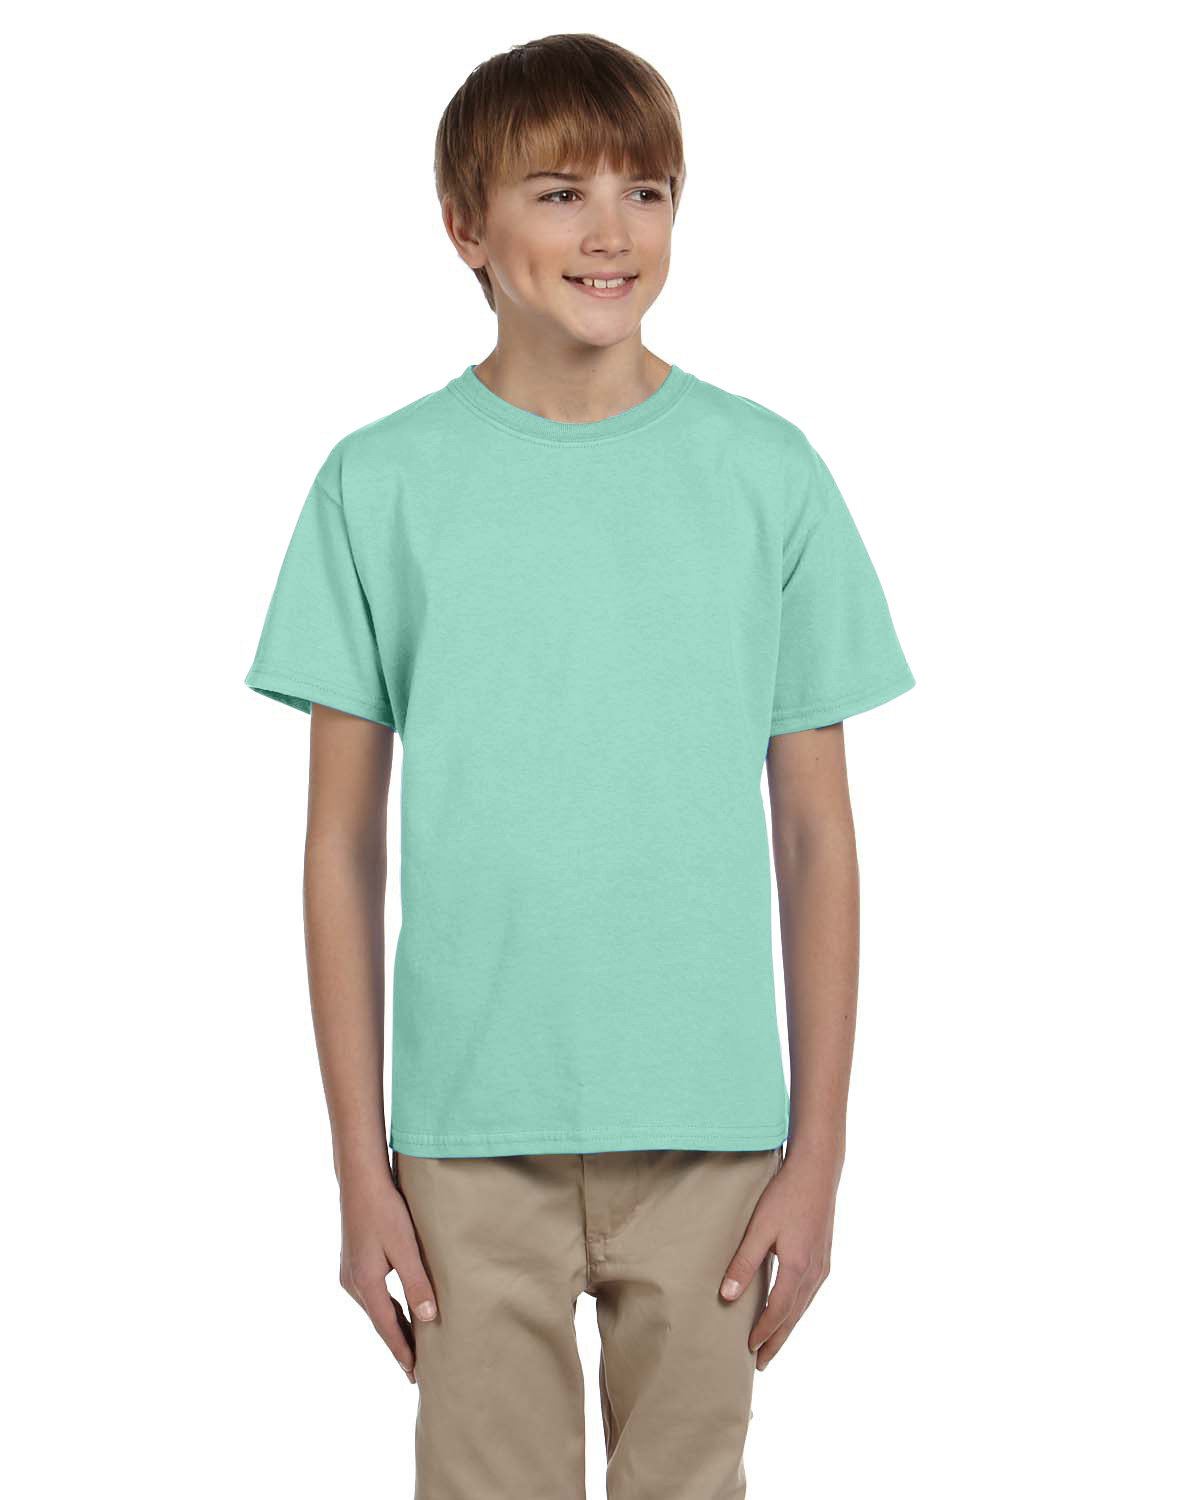 Hanes Youth 50/50 T-Shirt CLEAN MINT